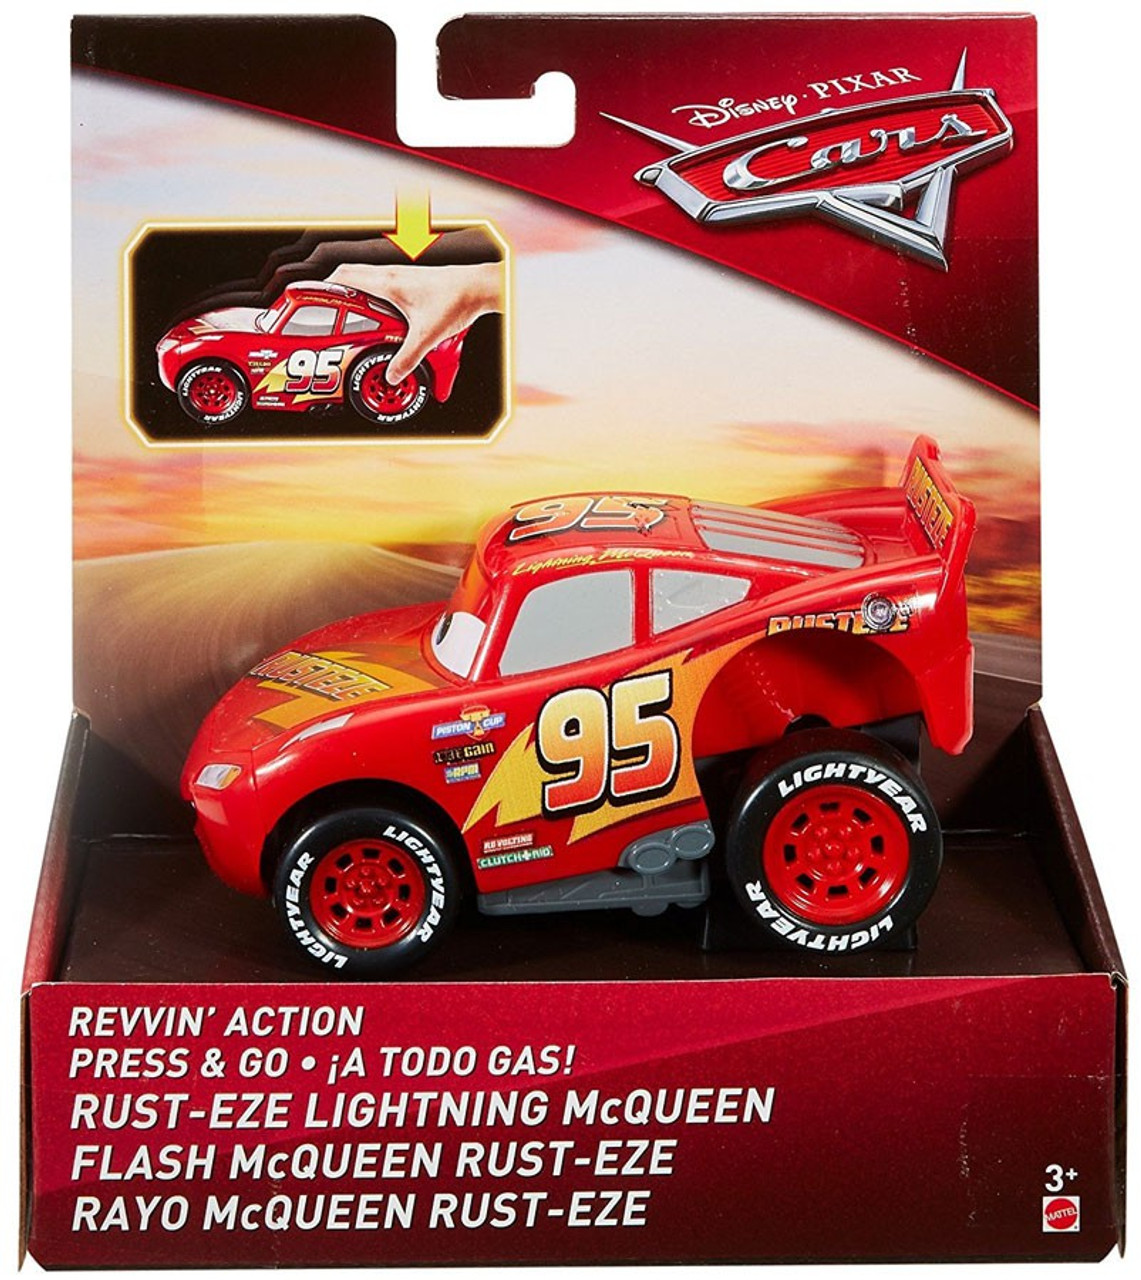 Disney Pixar Cars Cars 3 Revvin Action Rust Eze Lightning Mcqueen